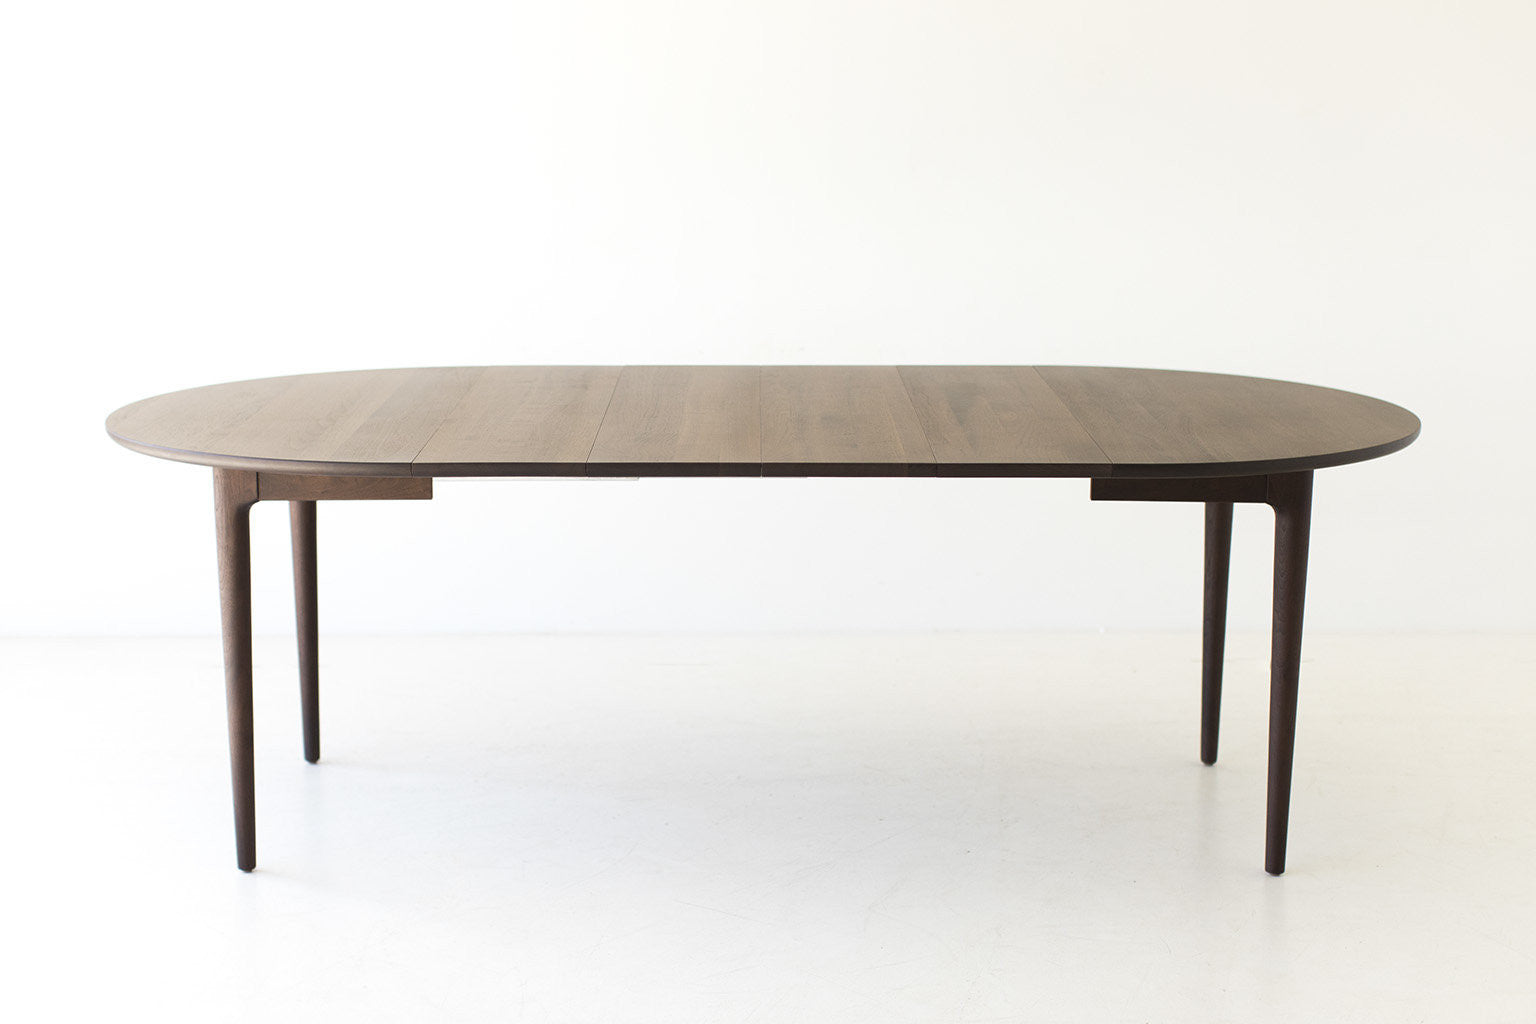 Lawrence-Peabody-Dining-Table-P-1707-Craft-Associates-Furniture-08